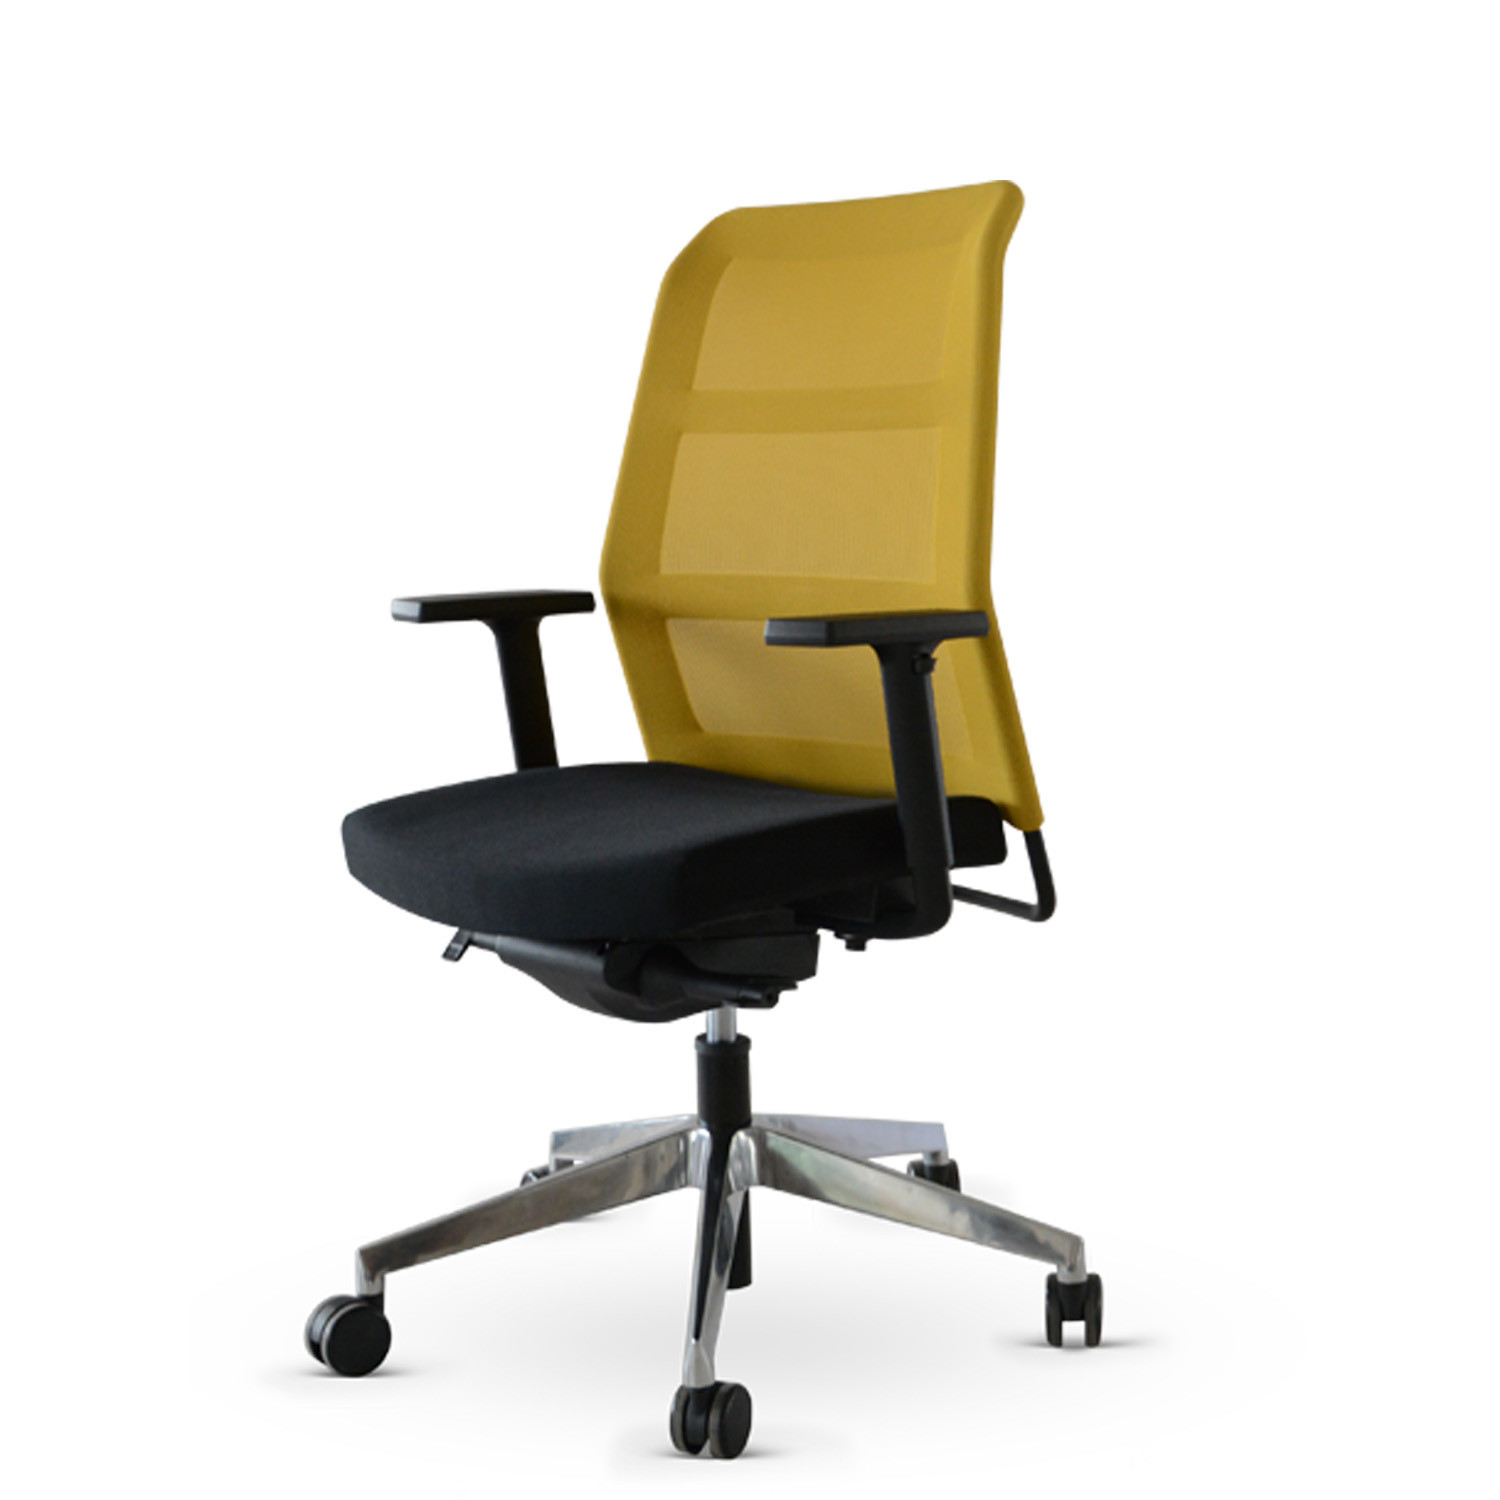 Paro_2 Task Chair with Yellow Mesh